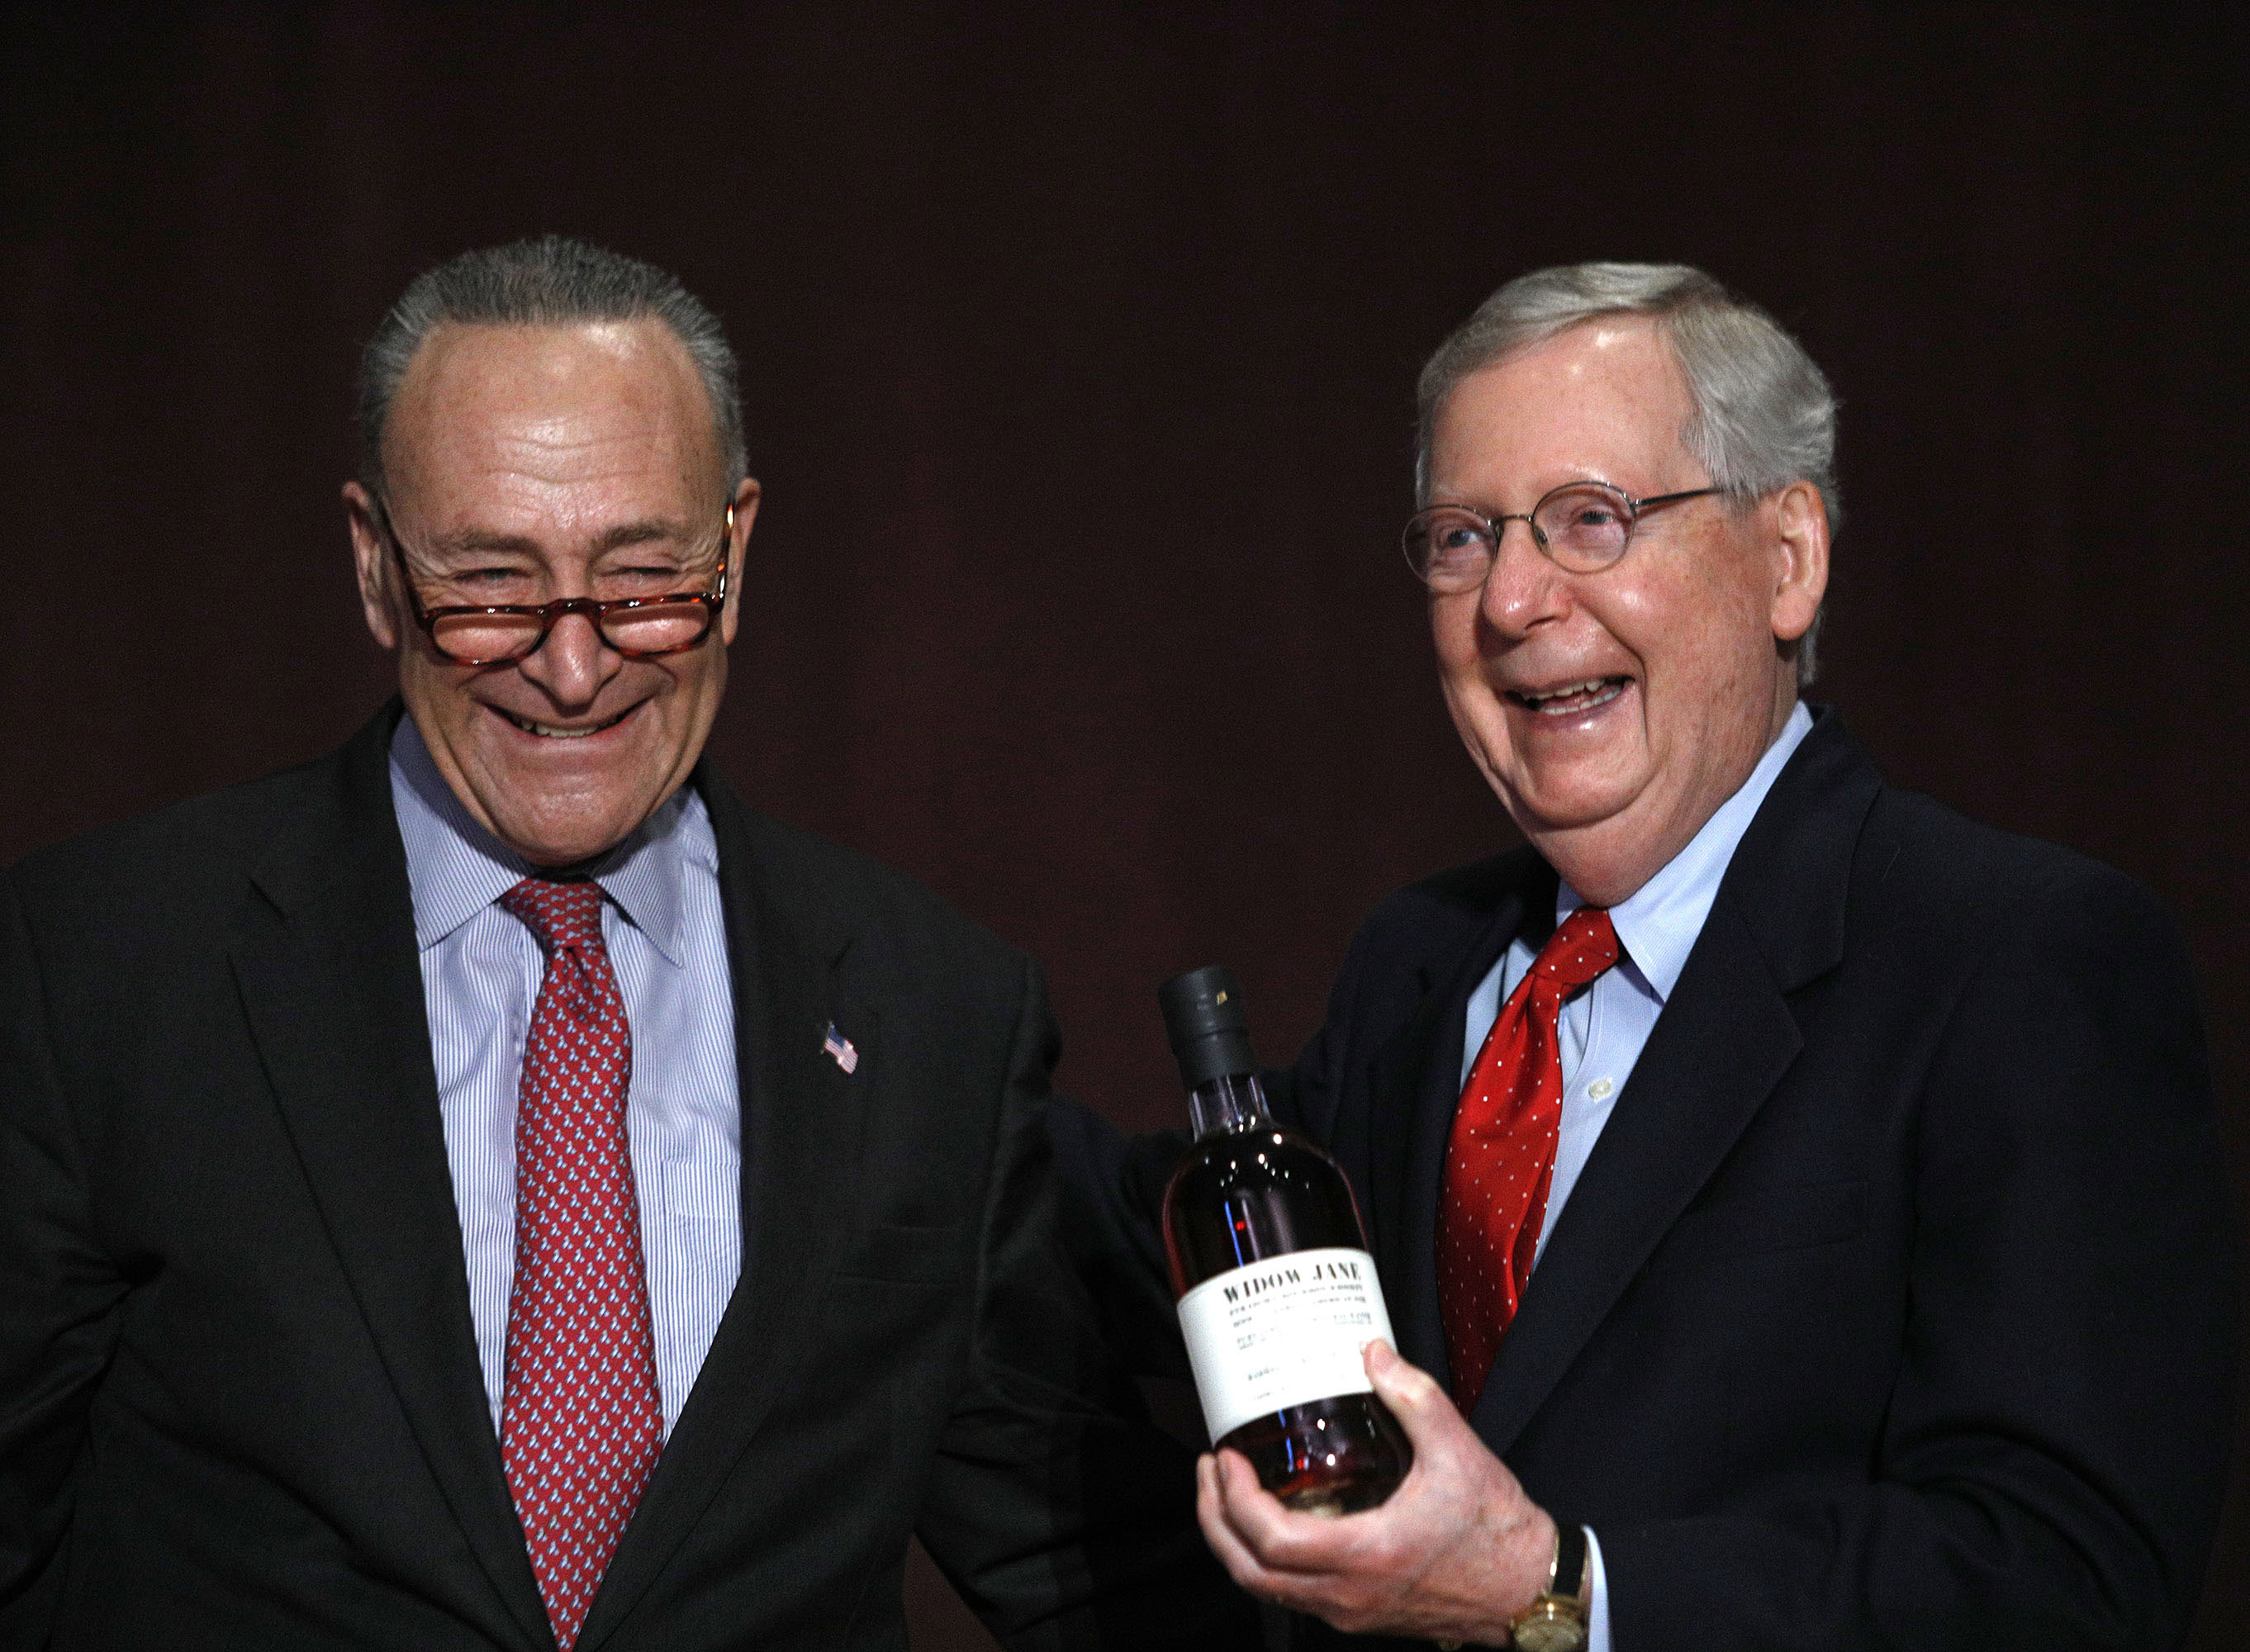 U.S. Senate Democratic Leader Chuck Schumer  (left) (D-NY), presents U.S. Senate Majority Leader Mitch McConnell (right) (R-KY) with a bottle of bourbon at the University of Louisville's McConnell Center where Schumer was scheduled to speak February 12, 2018 in Louisville, Kentucky.